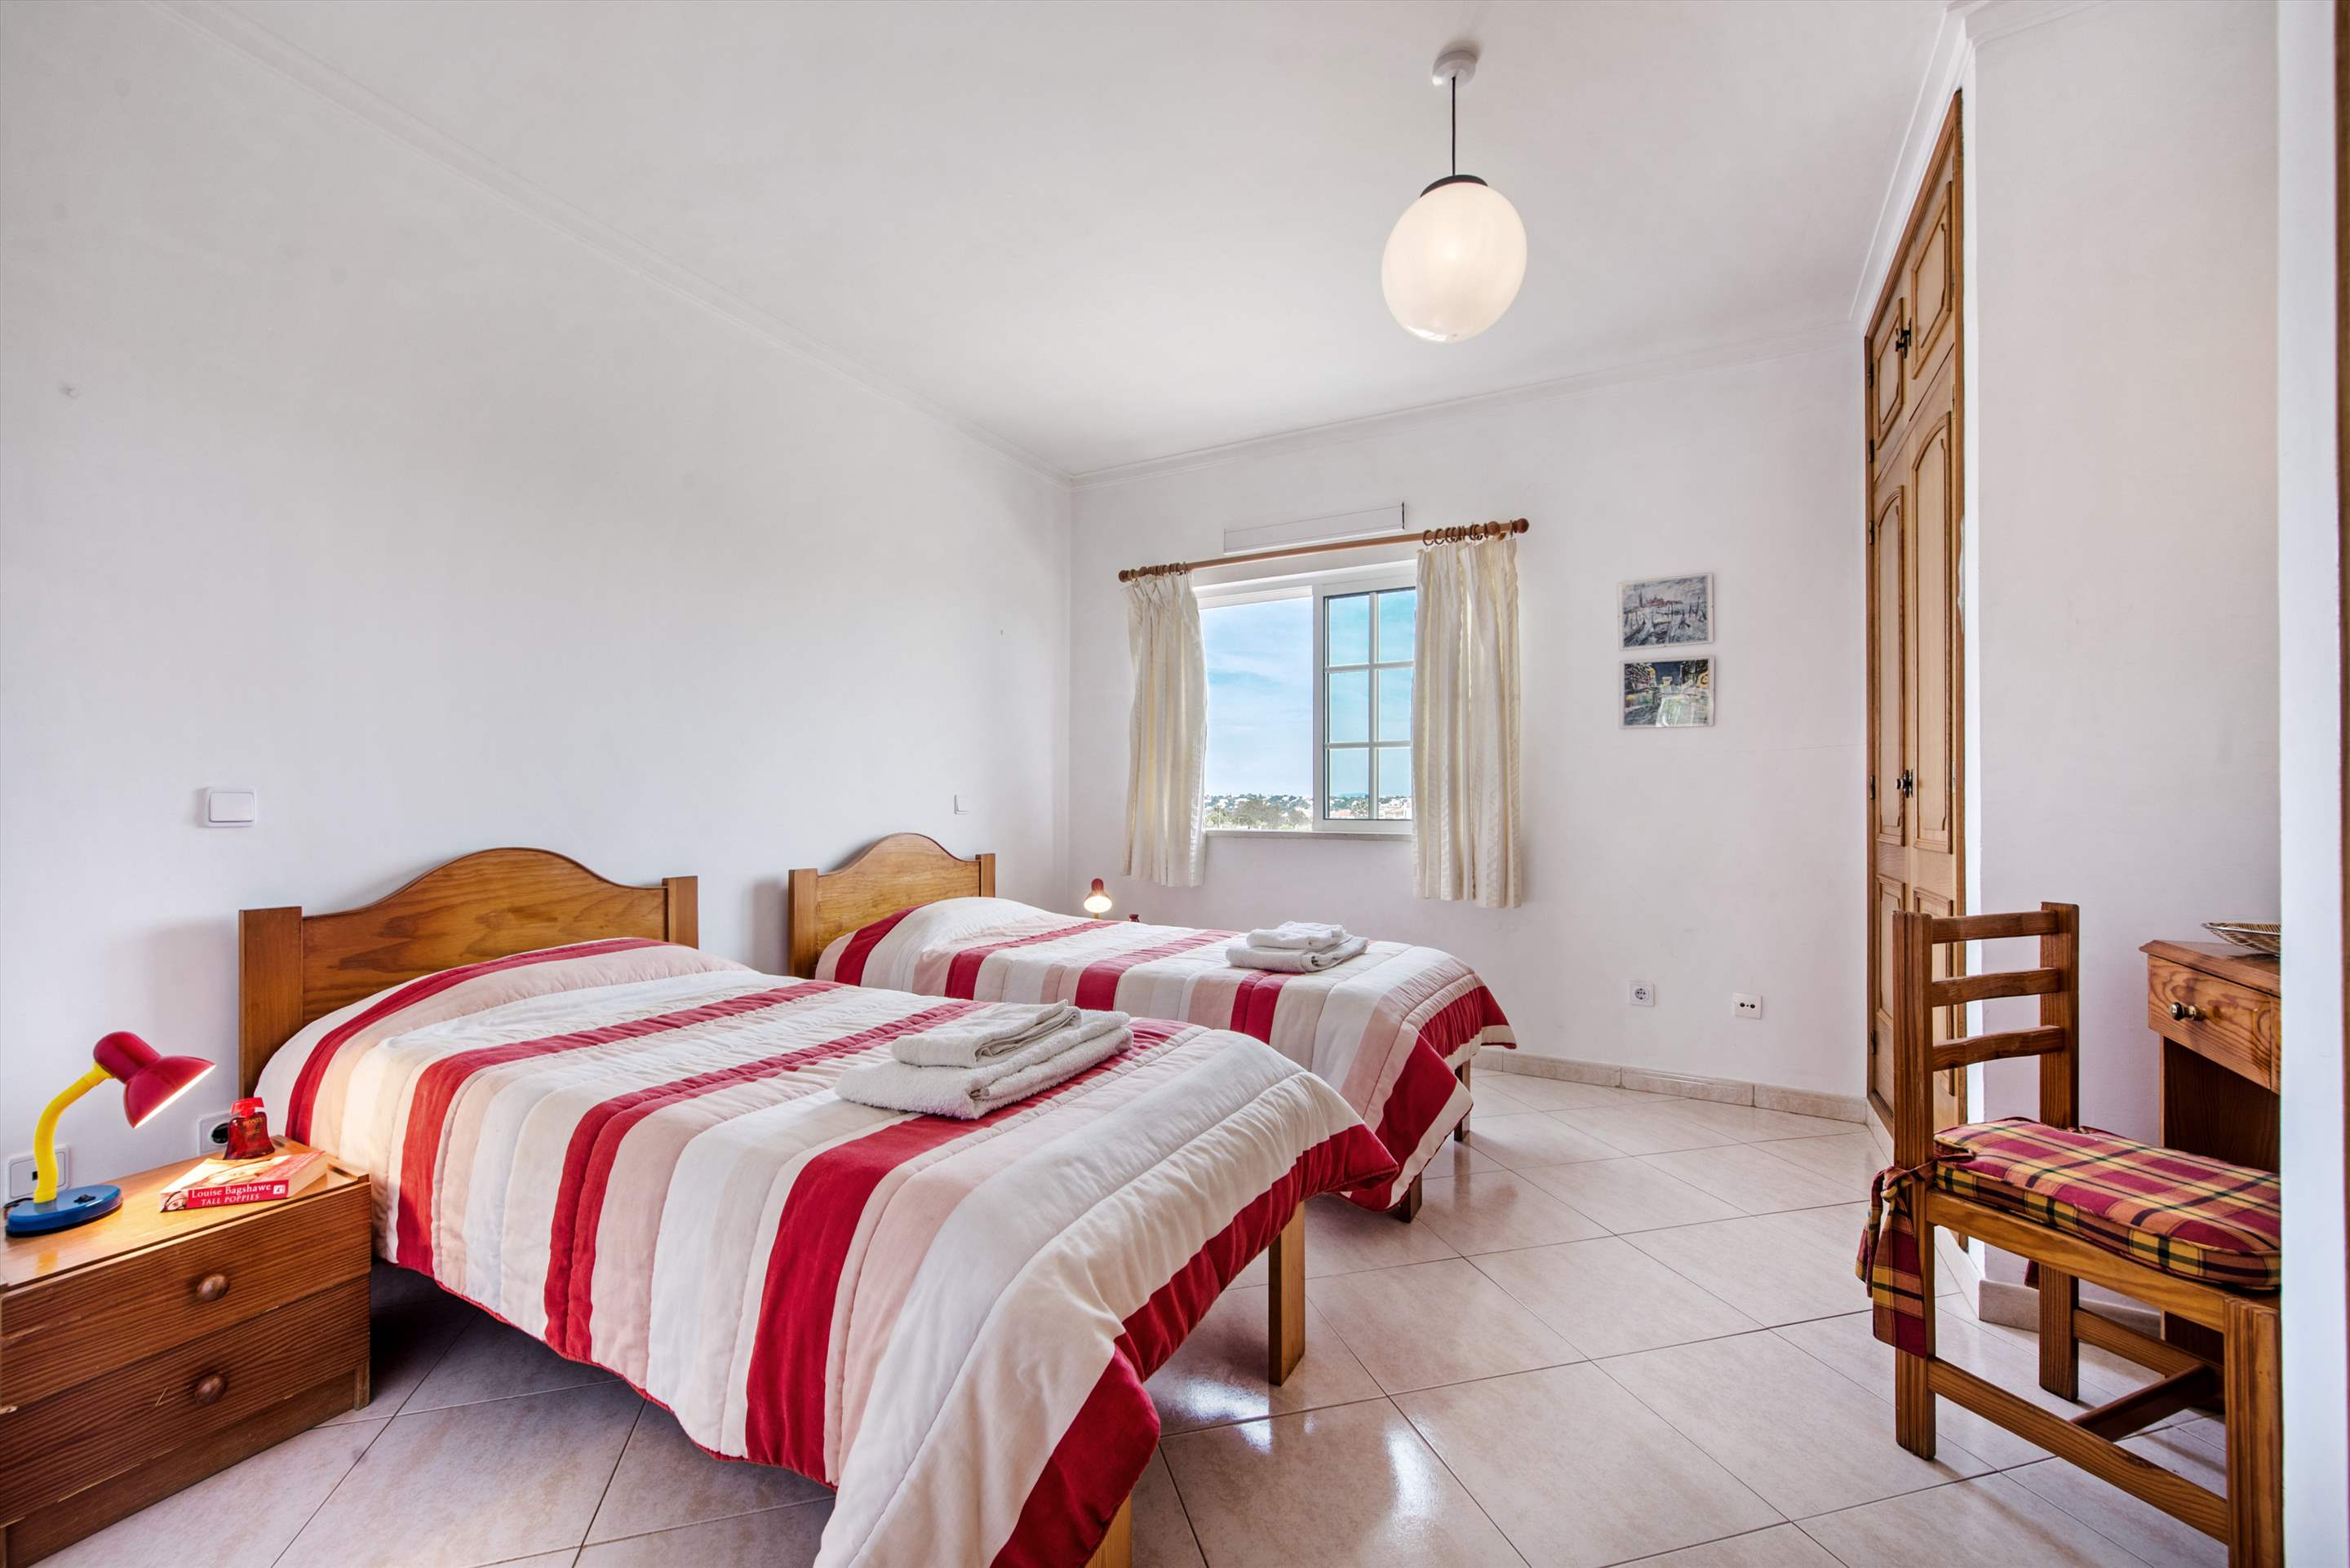 Apt O Monte, For Up to 4 Persons, 2 bedroom apartment in Gale, Vale da Parra and Guia, Algarve Photo #21